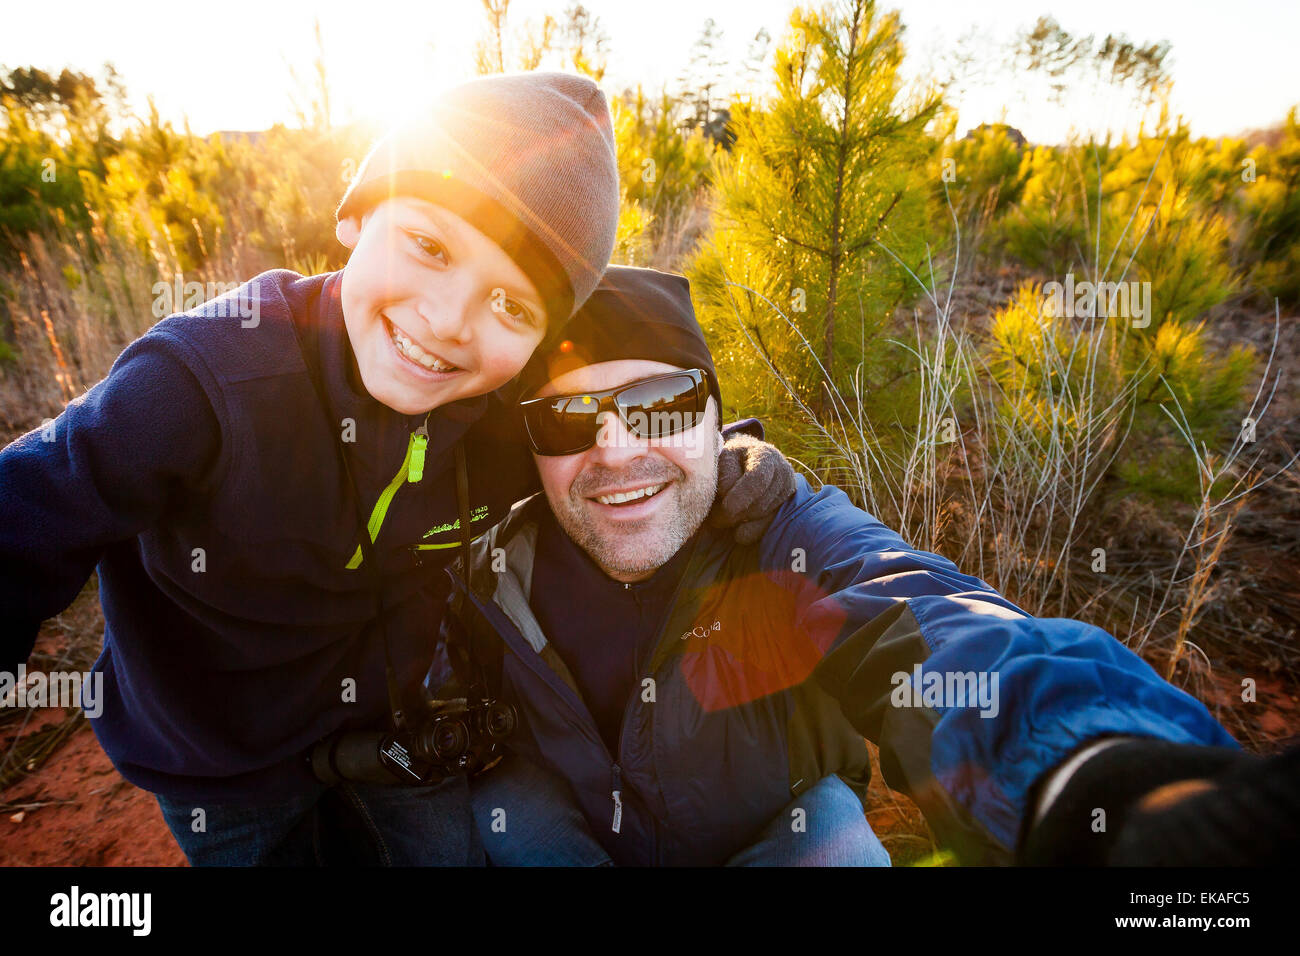 Père et fils en tenant un selfies Photo Stock